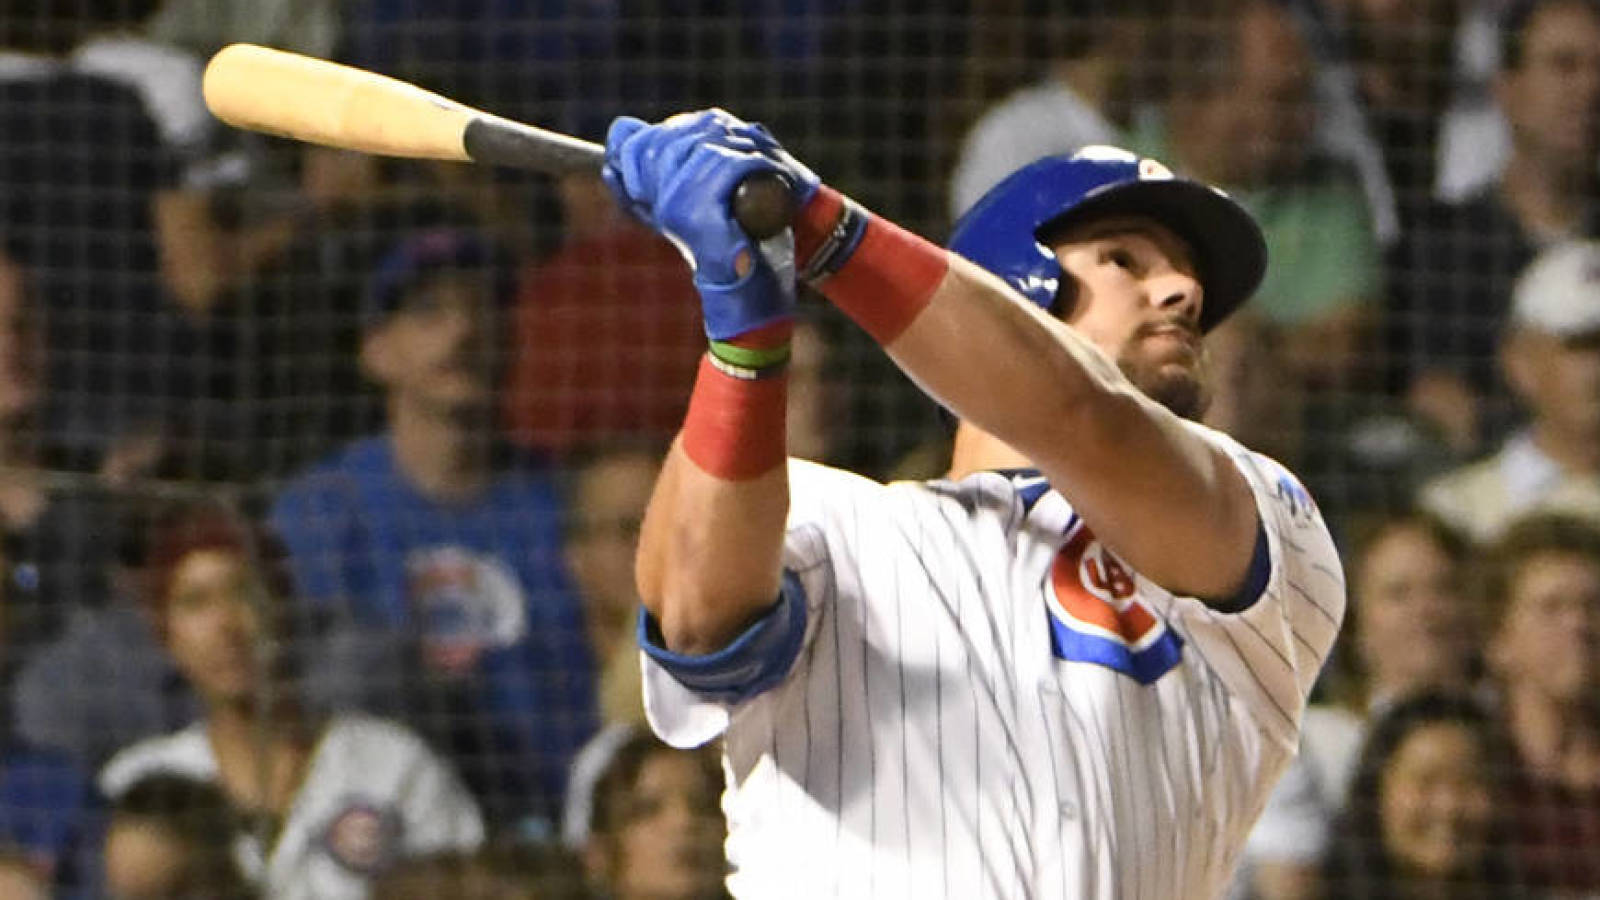 Photo of National DH League: The good, the bad and the ugly